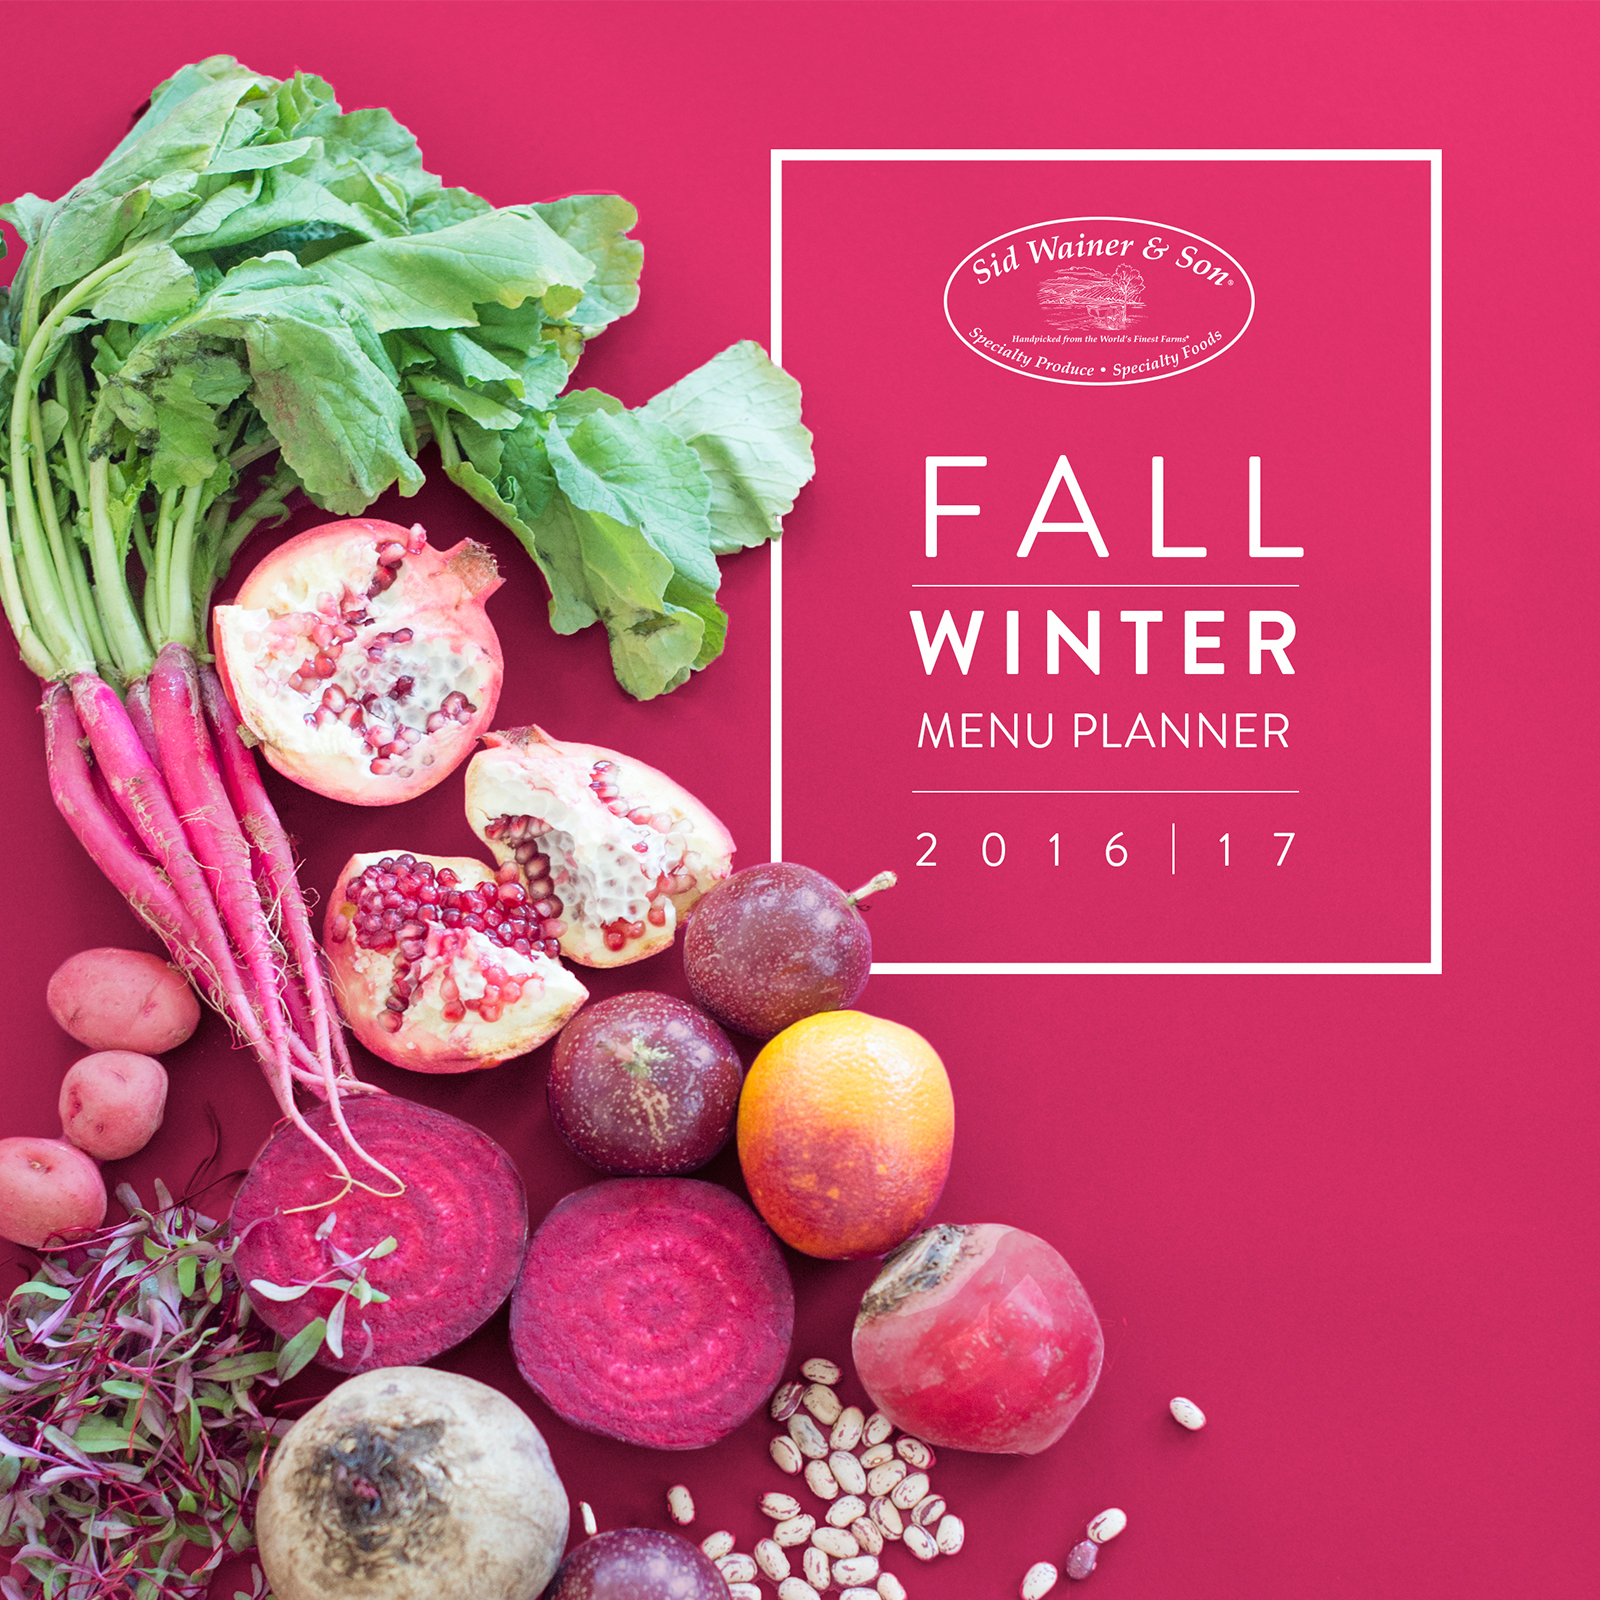 Fall Winter Produce Planner